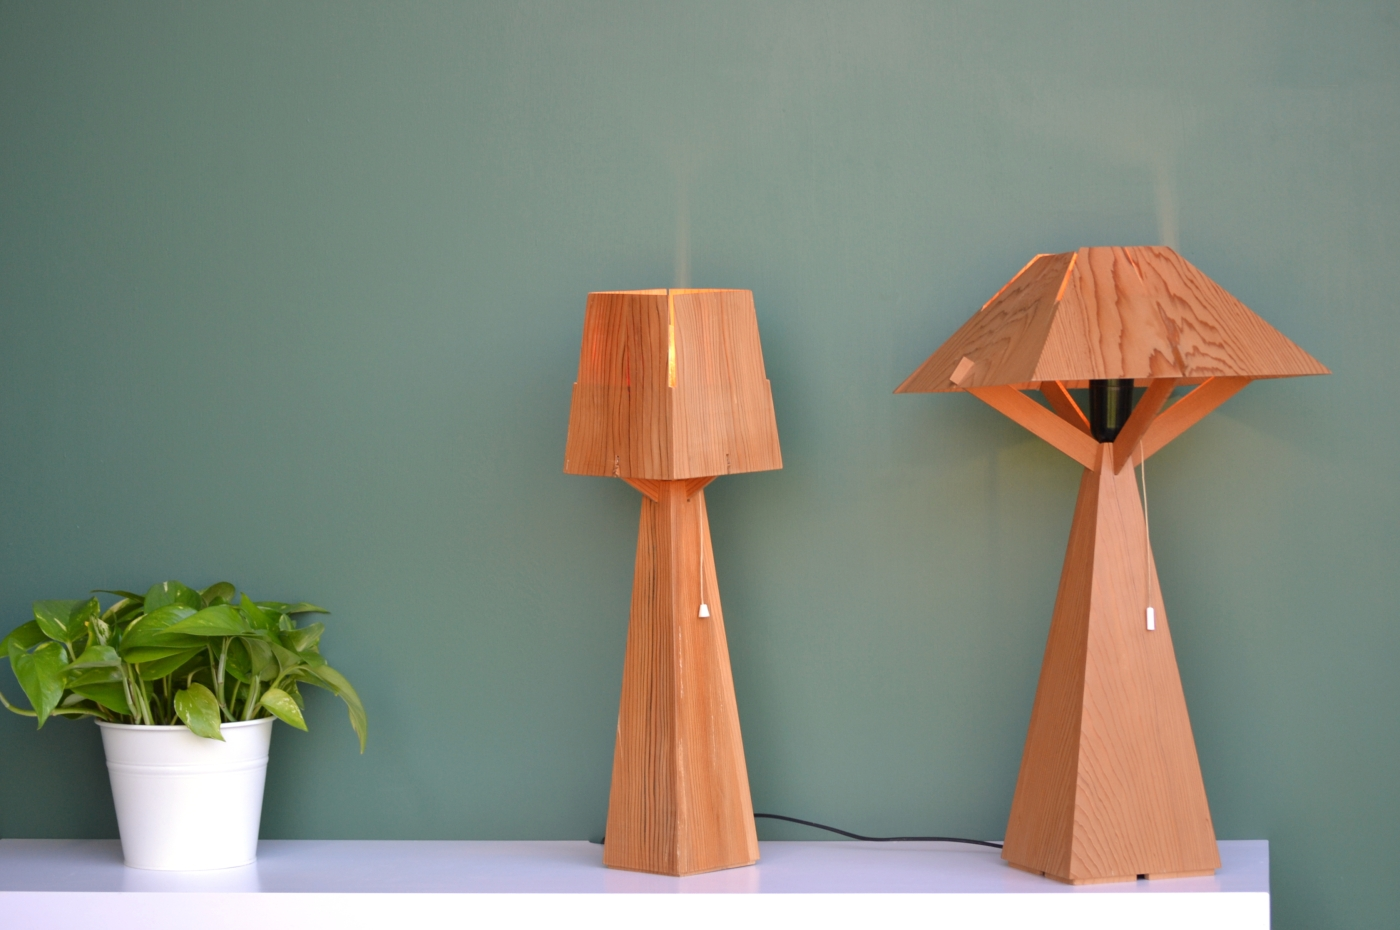 Cedro 20 and Cedro 10 Lamps